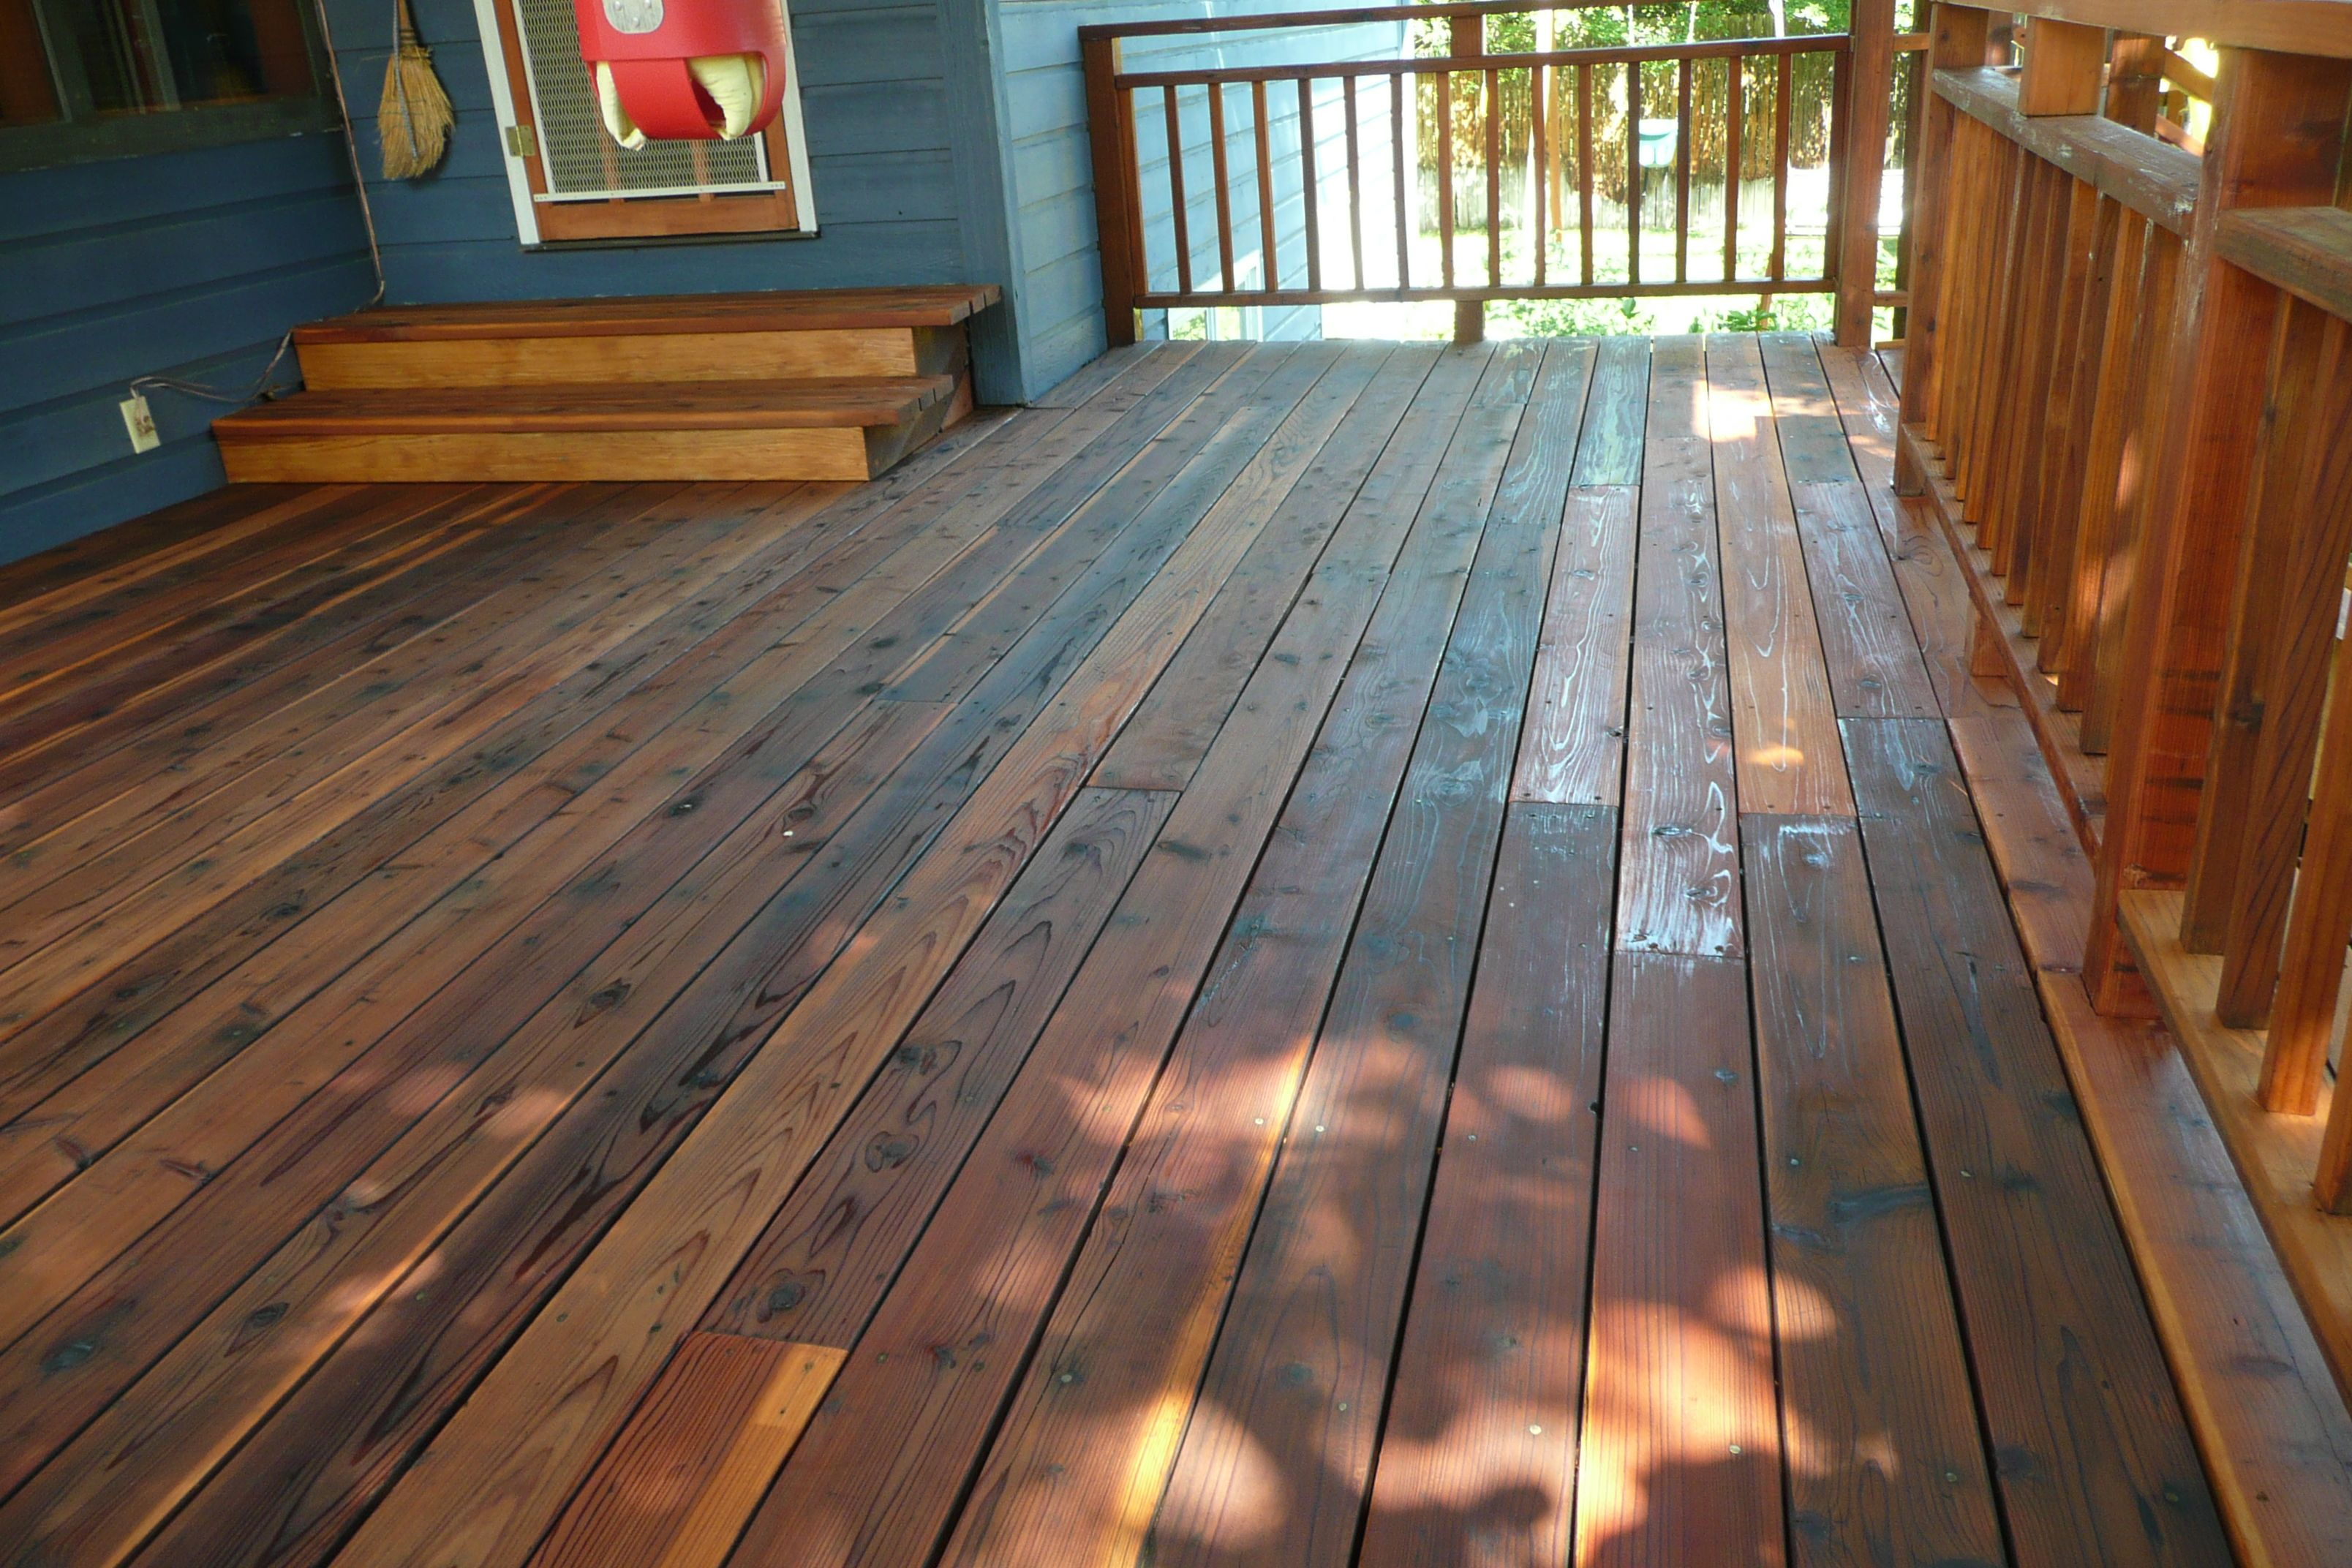 Pin By Colorado Deck Master On Best Deck Stains Deck Stain Colors Staining Deck Best Deck Stain